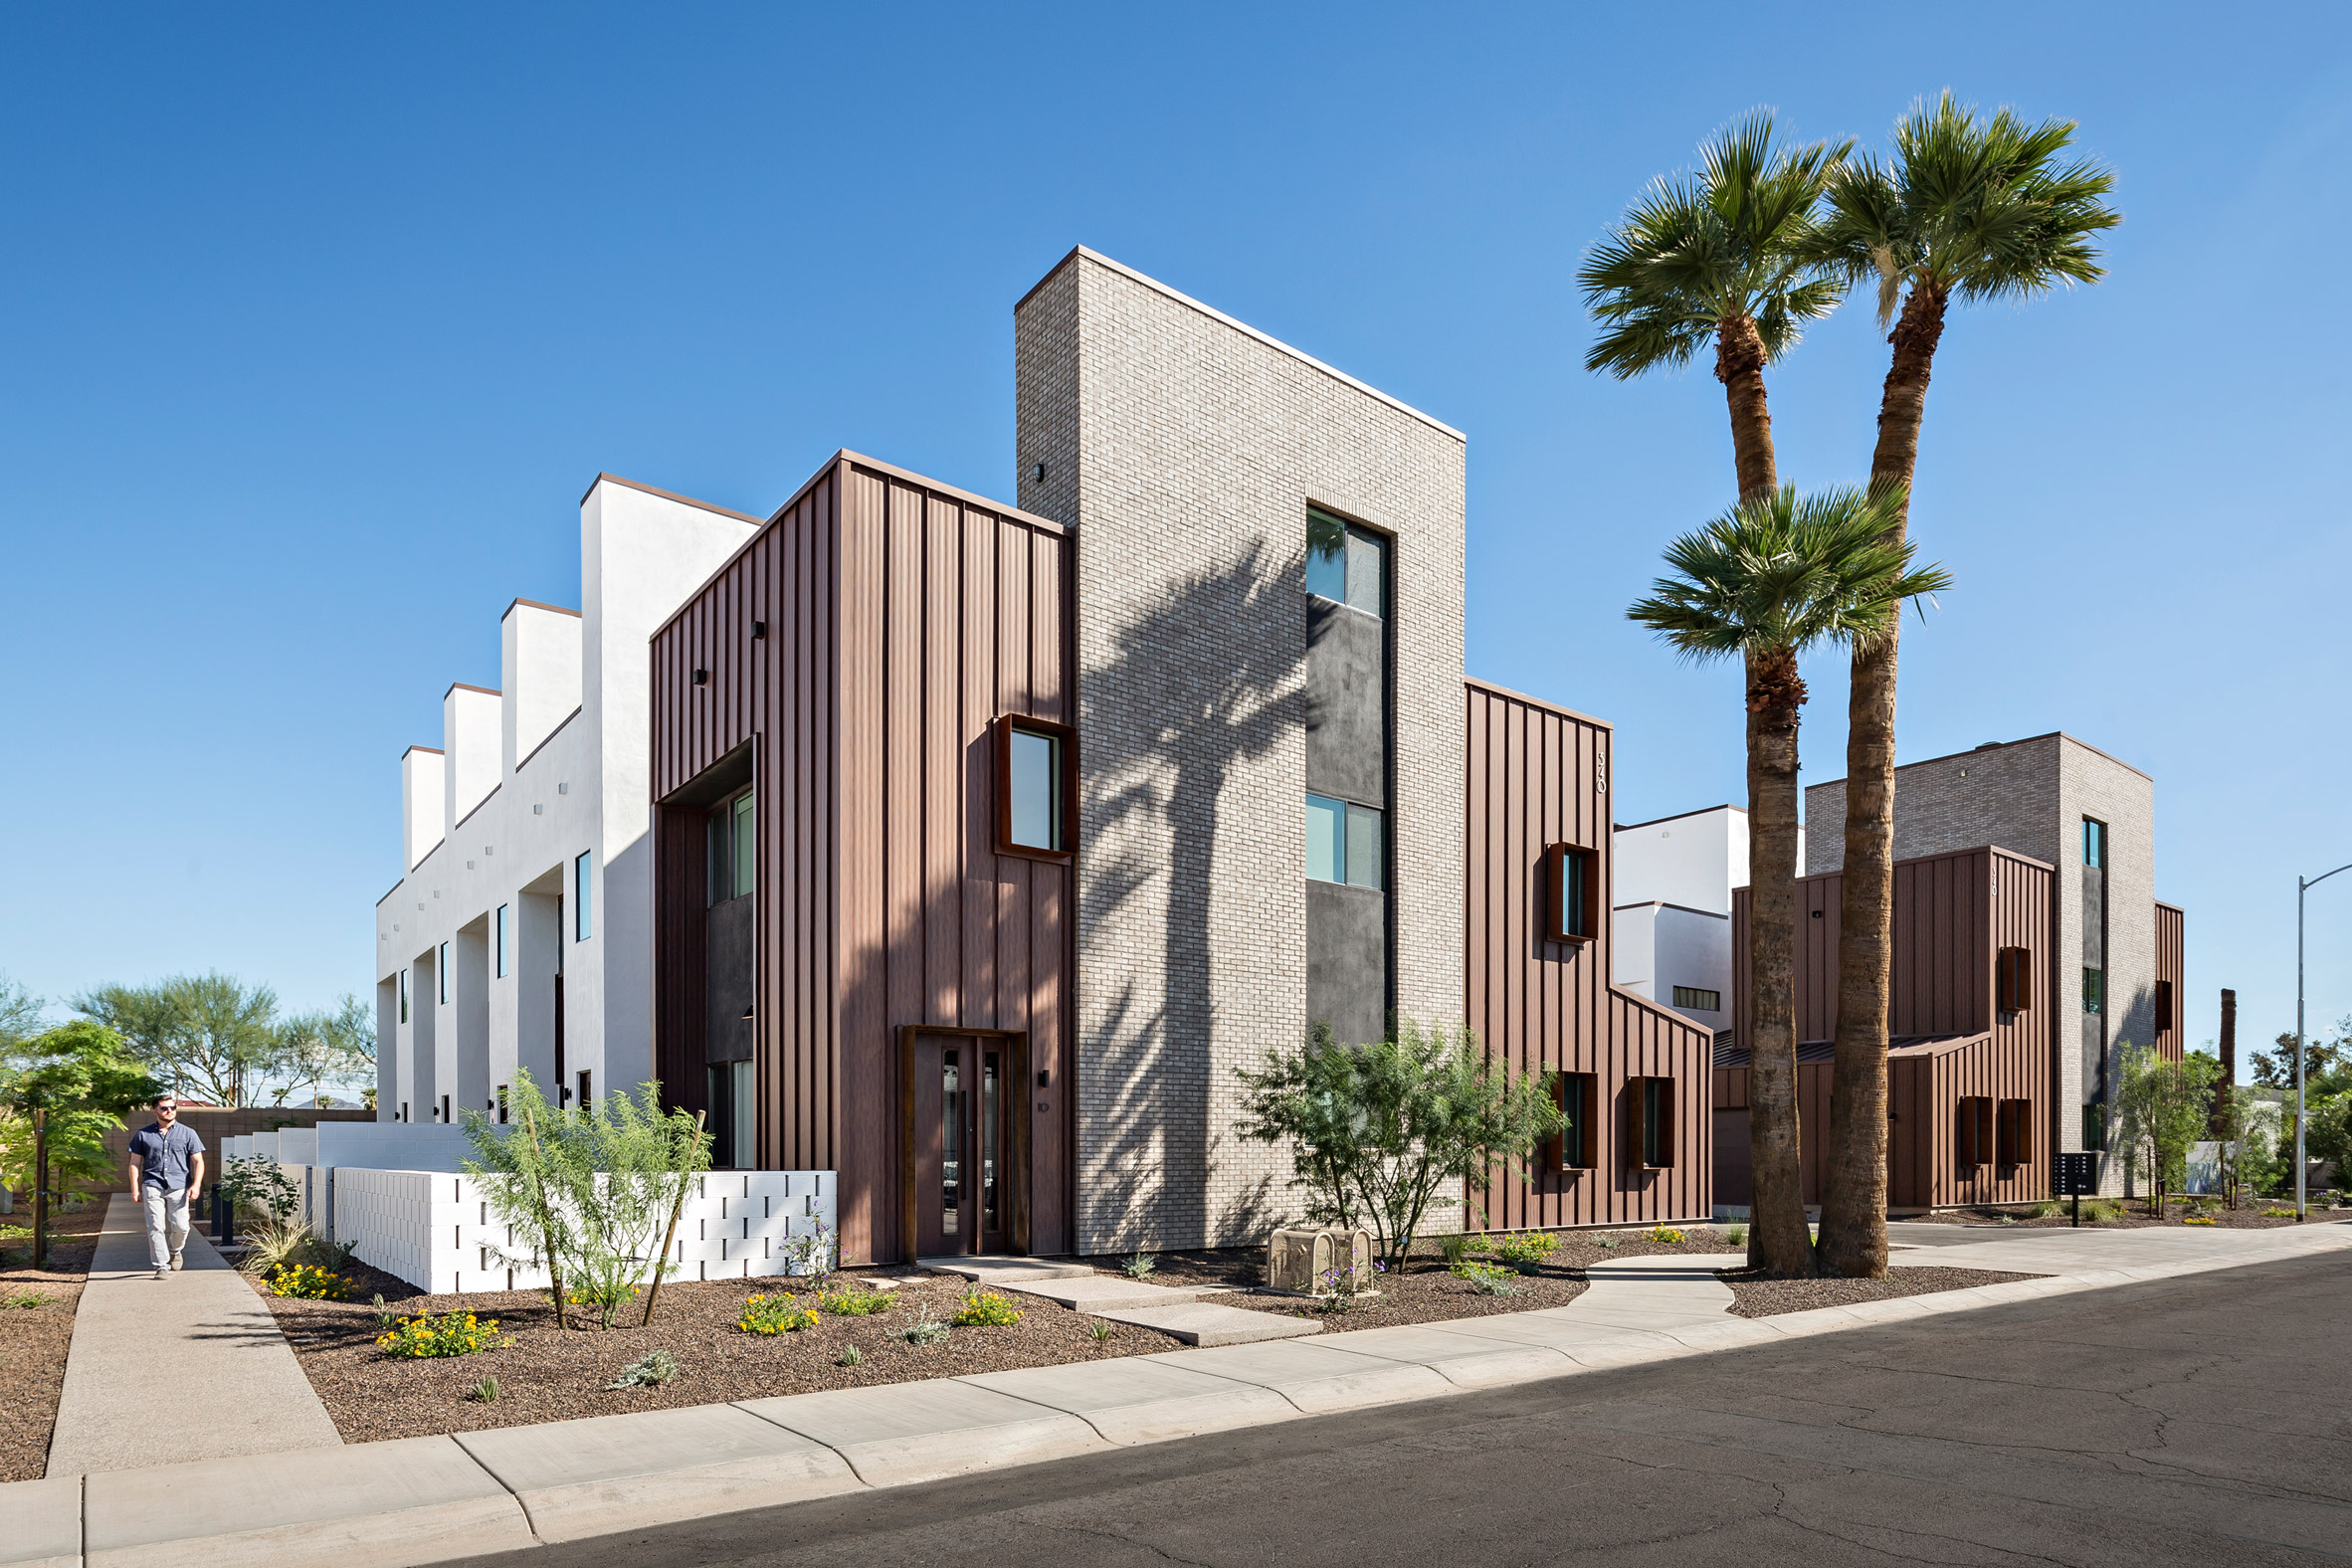 The Ranch Mine clads Phoenix townhouses in brick, stucco and weathering steel